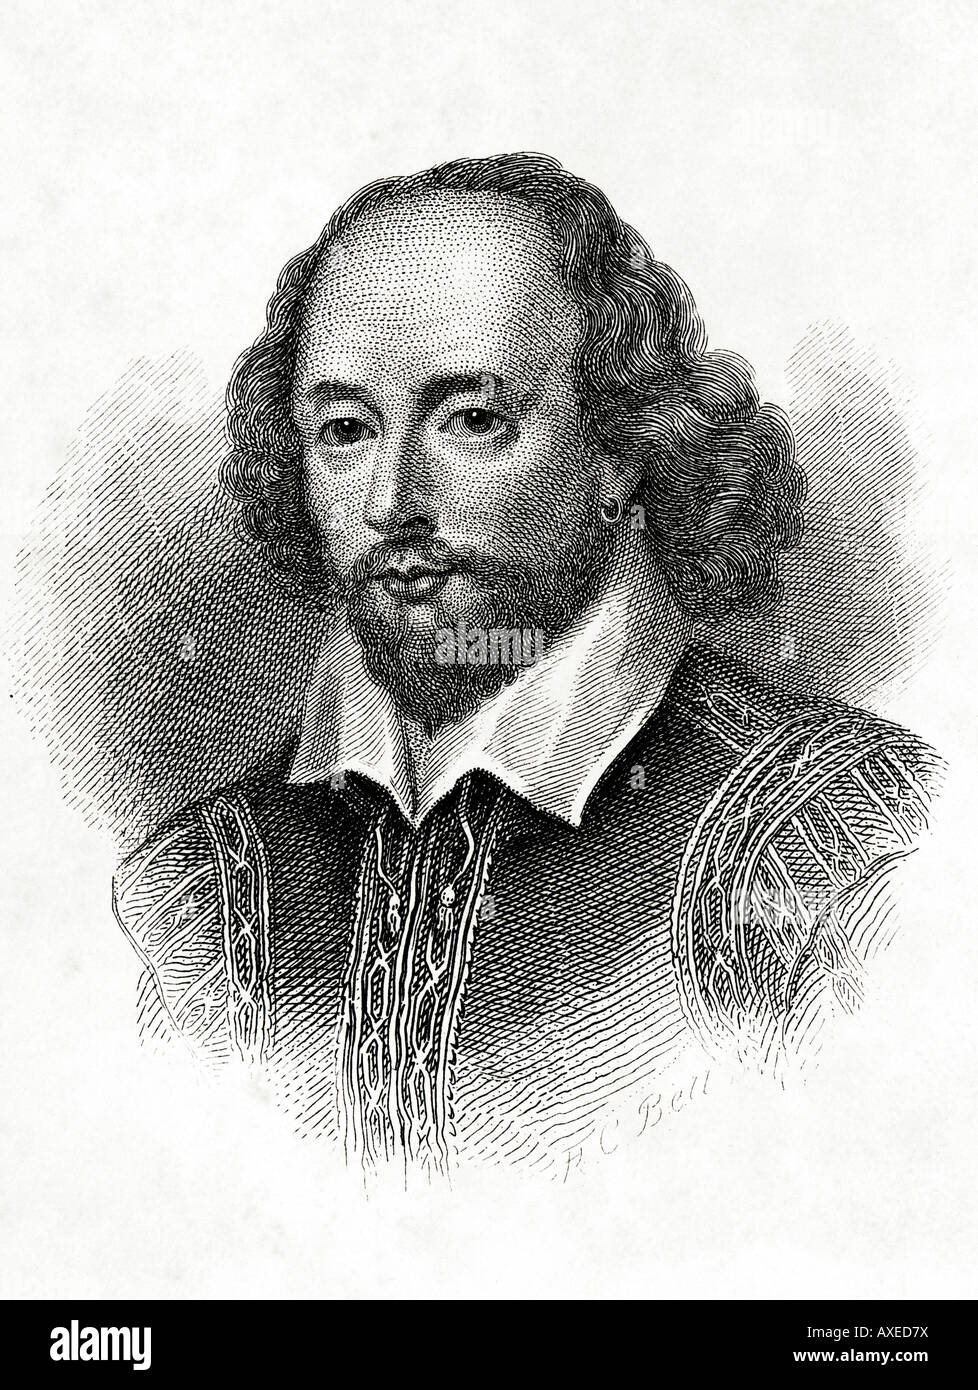 Victorian Etching of William Shakespeare EDITORIAL USE ONLY - Stock Image